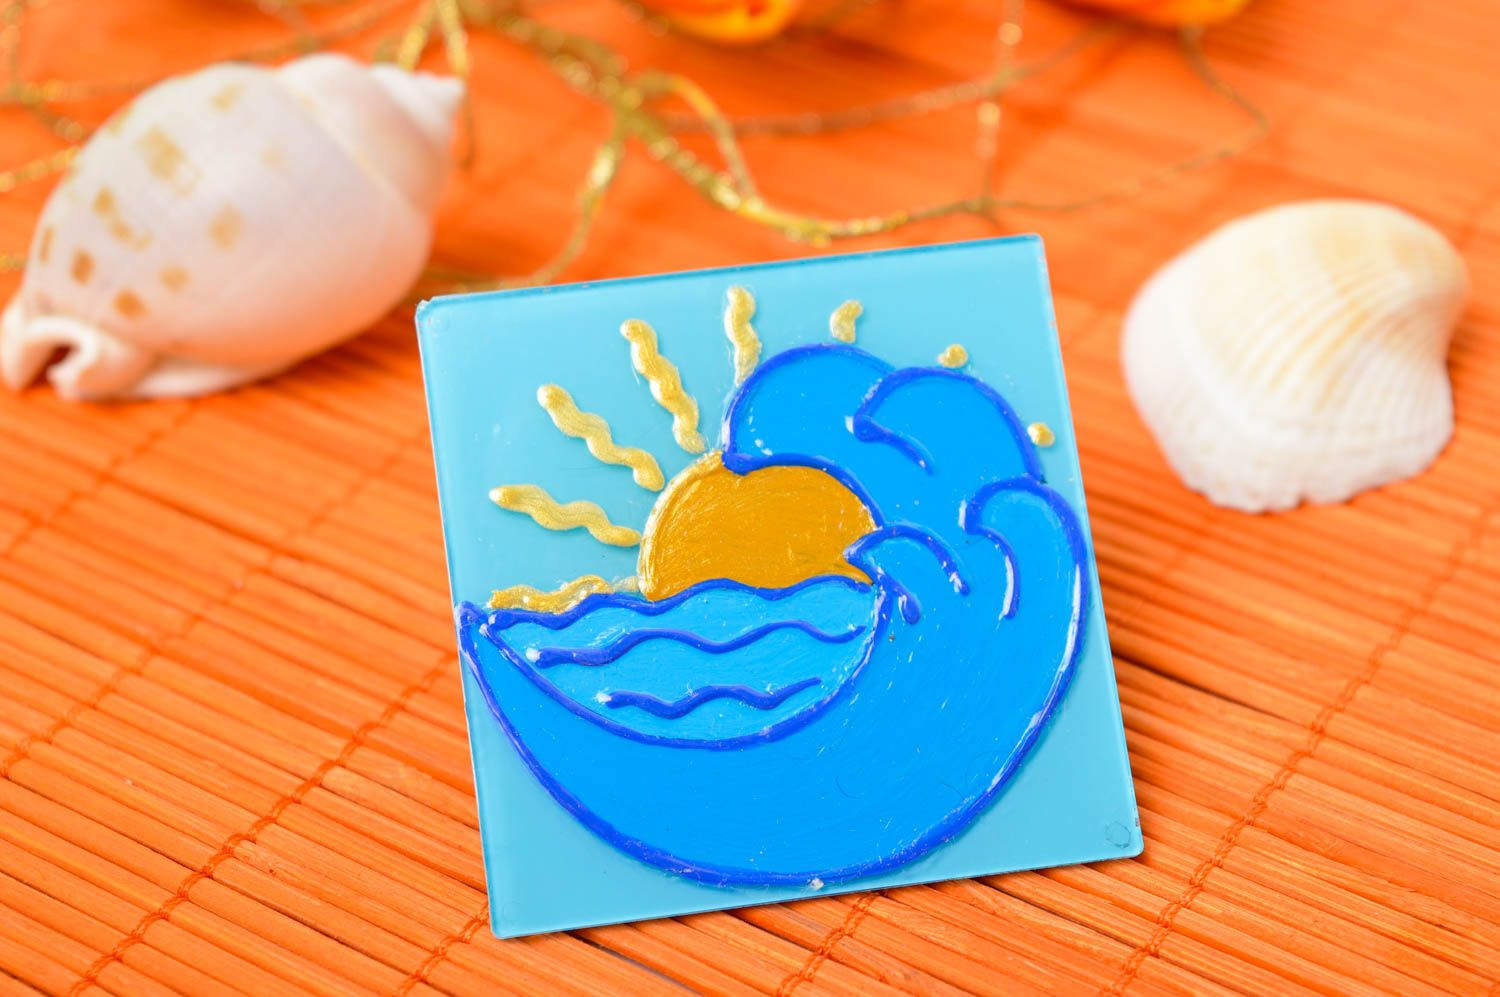 Unusual handmade fridge magnet funny magnets small gifts decorative use only photo 1